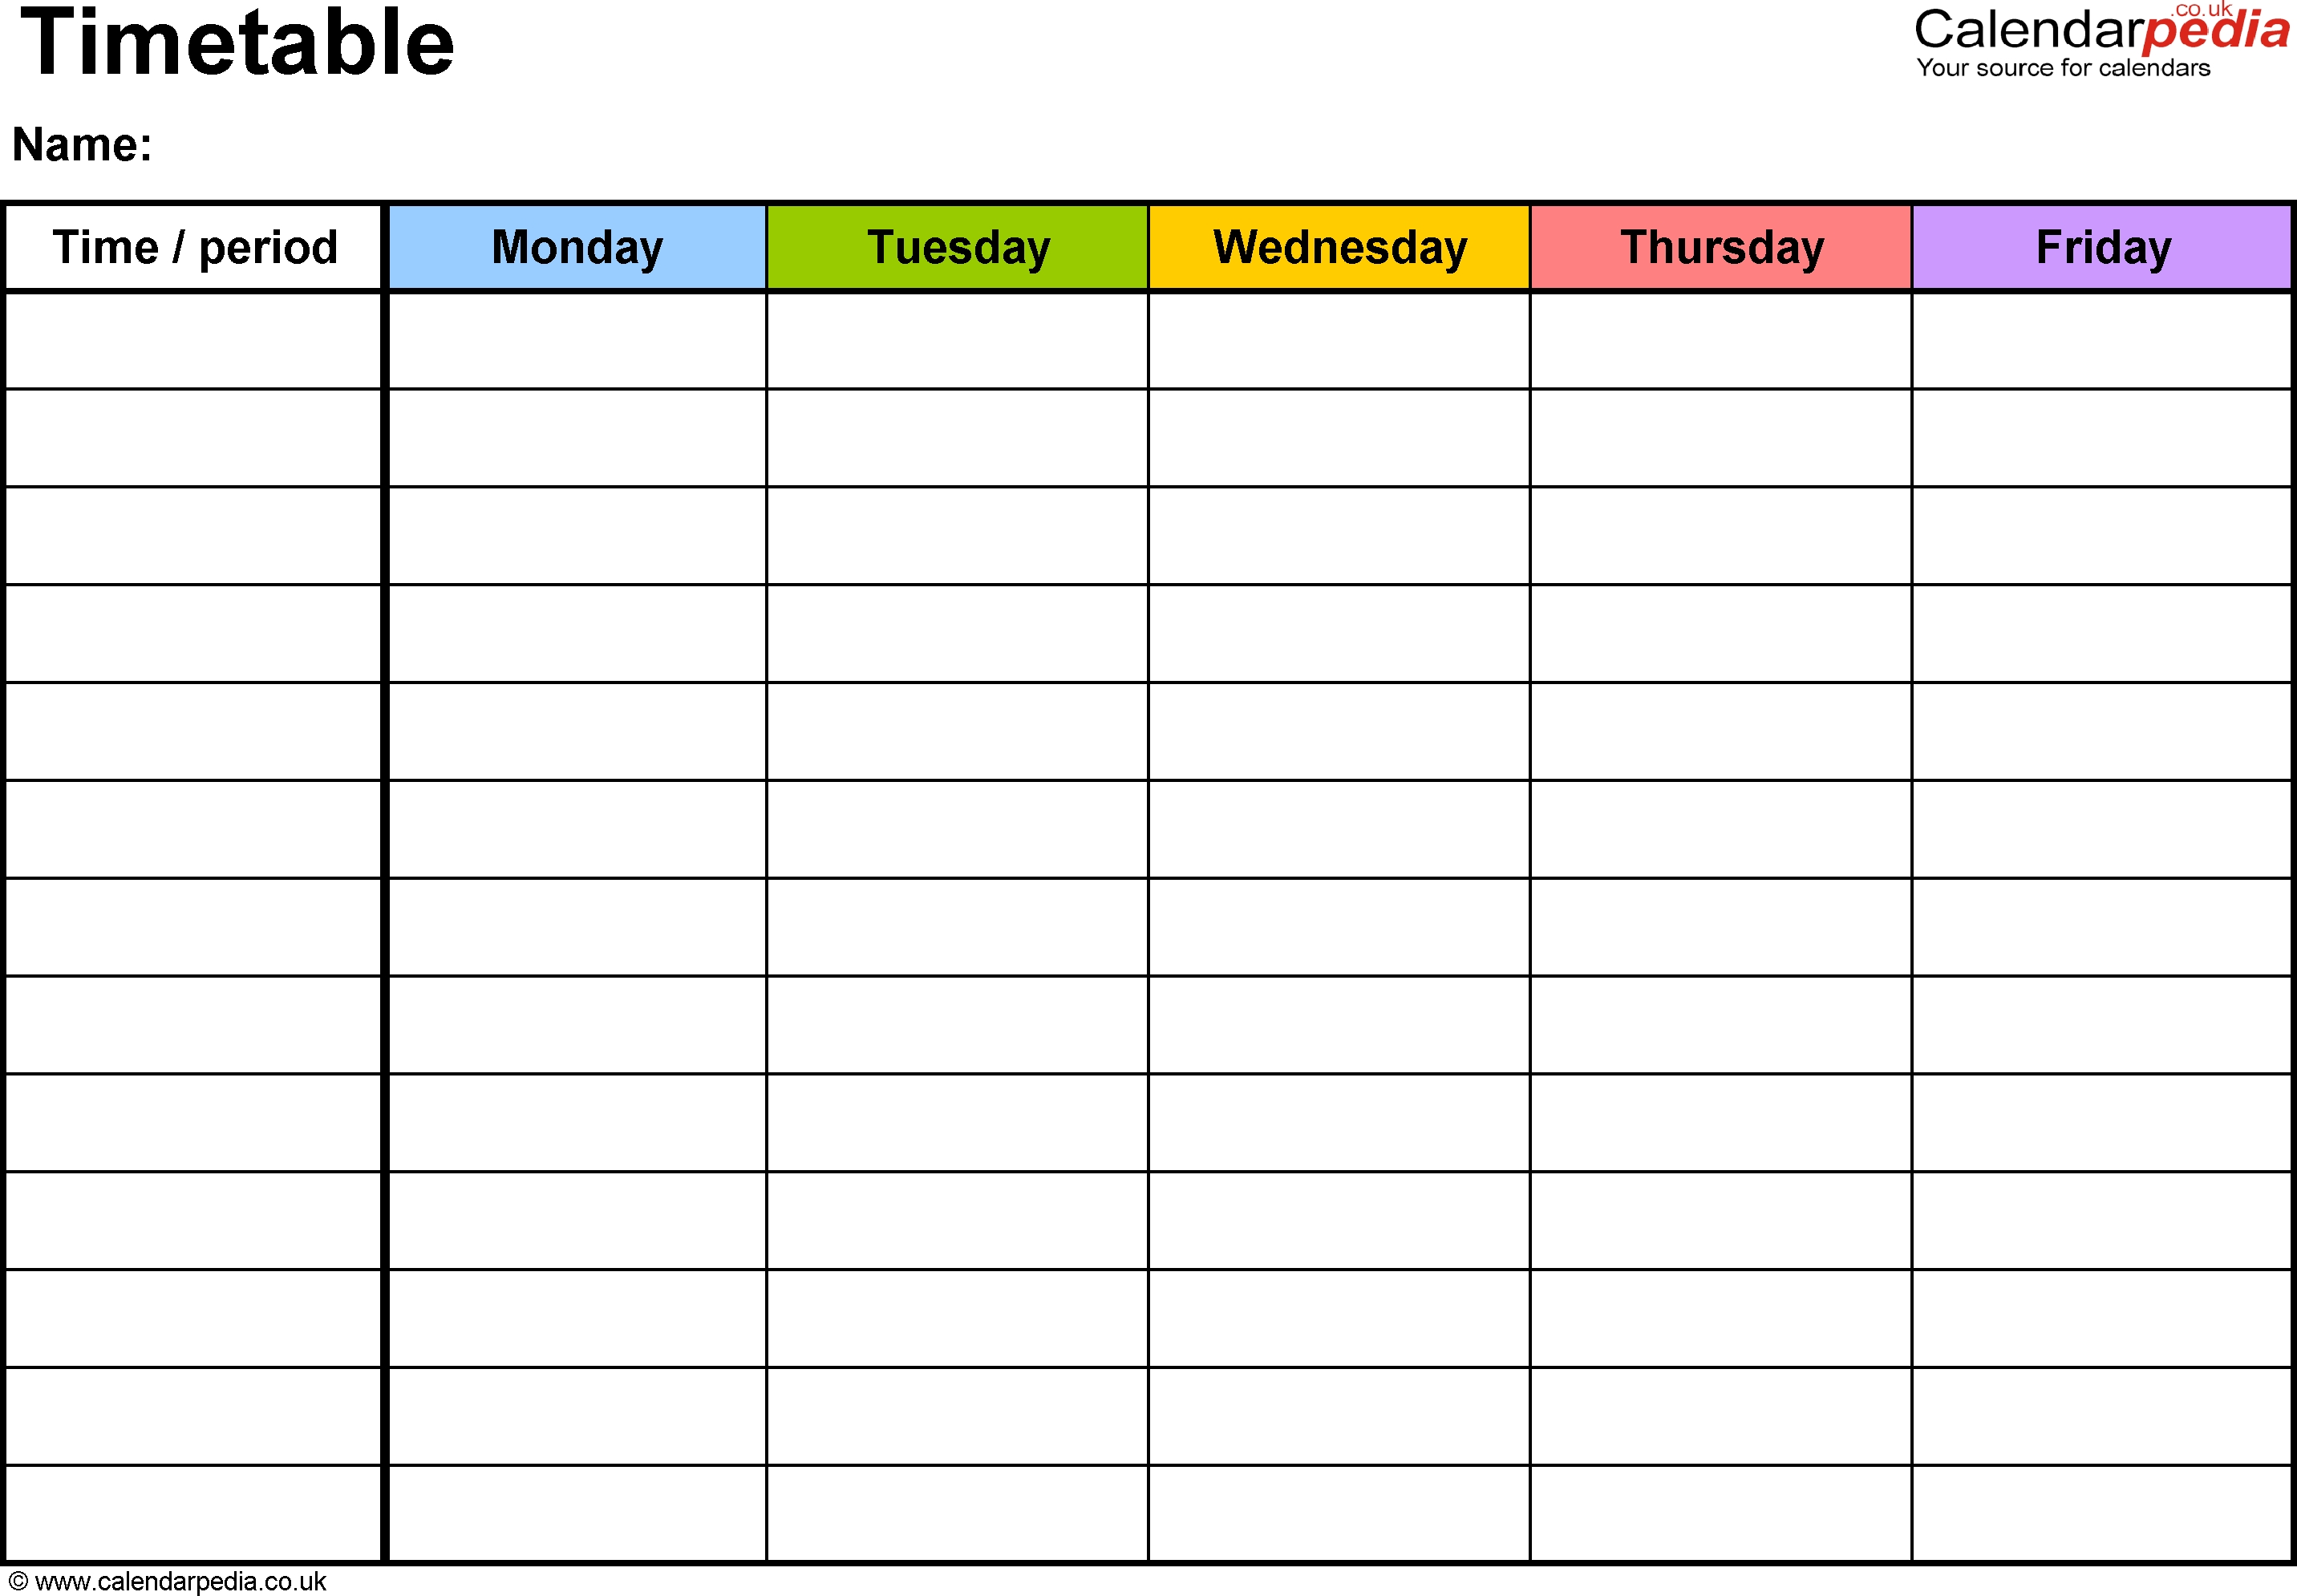 Pdf Timetable Template 2: Landscape Format, A4, 1 Page  Editable Day Schedule With Time Template